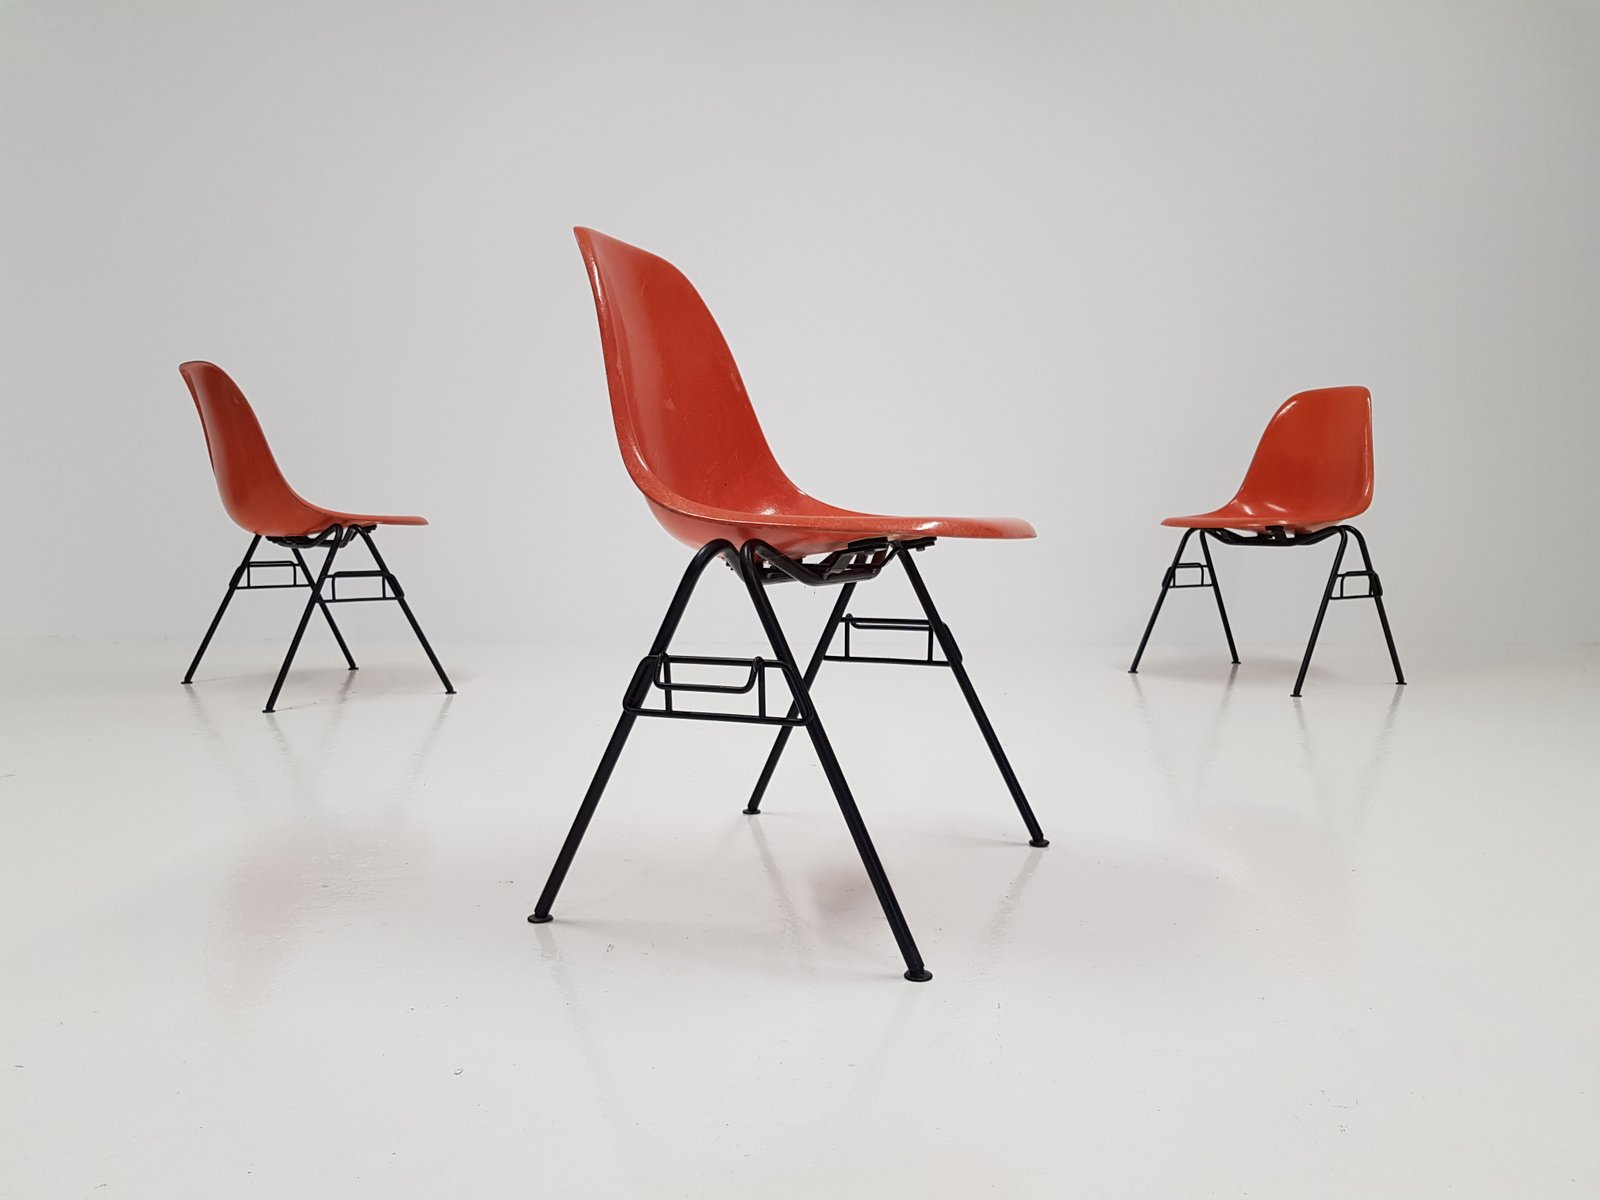 Astounding Orange Dss Fiberglass Stacking Chair By Charles Ray Eames For Herman Miller 1960S Squirreltailoven Fun Painted Chair Ideas Images Squirreltailovenorg